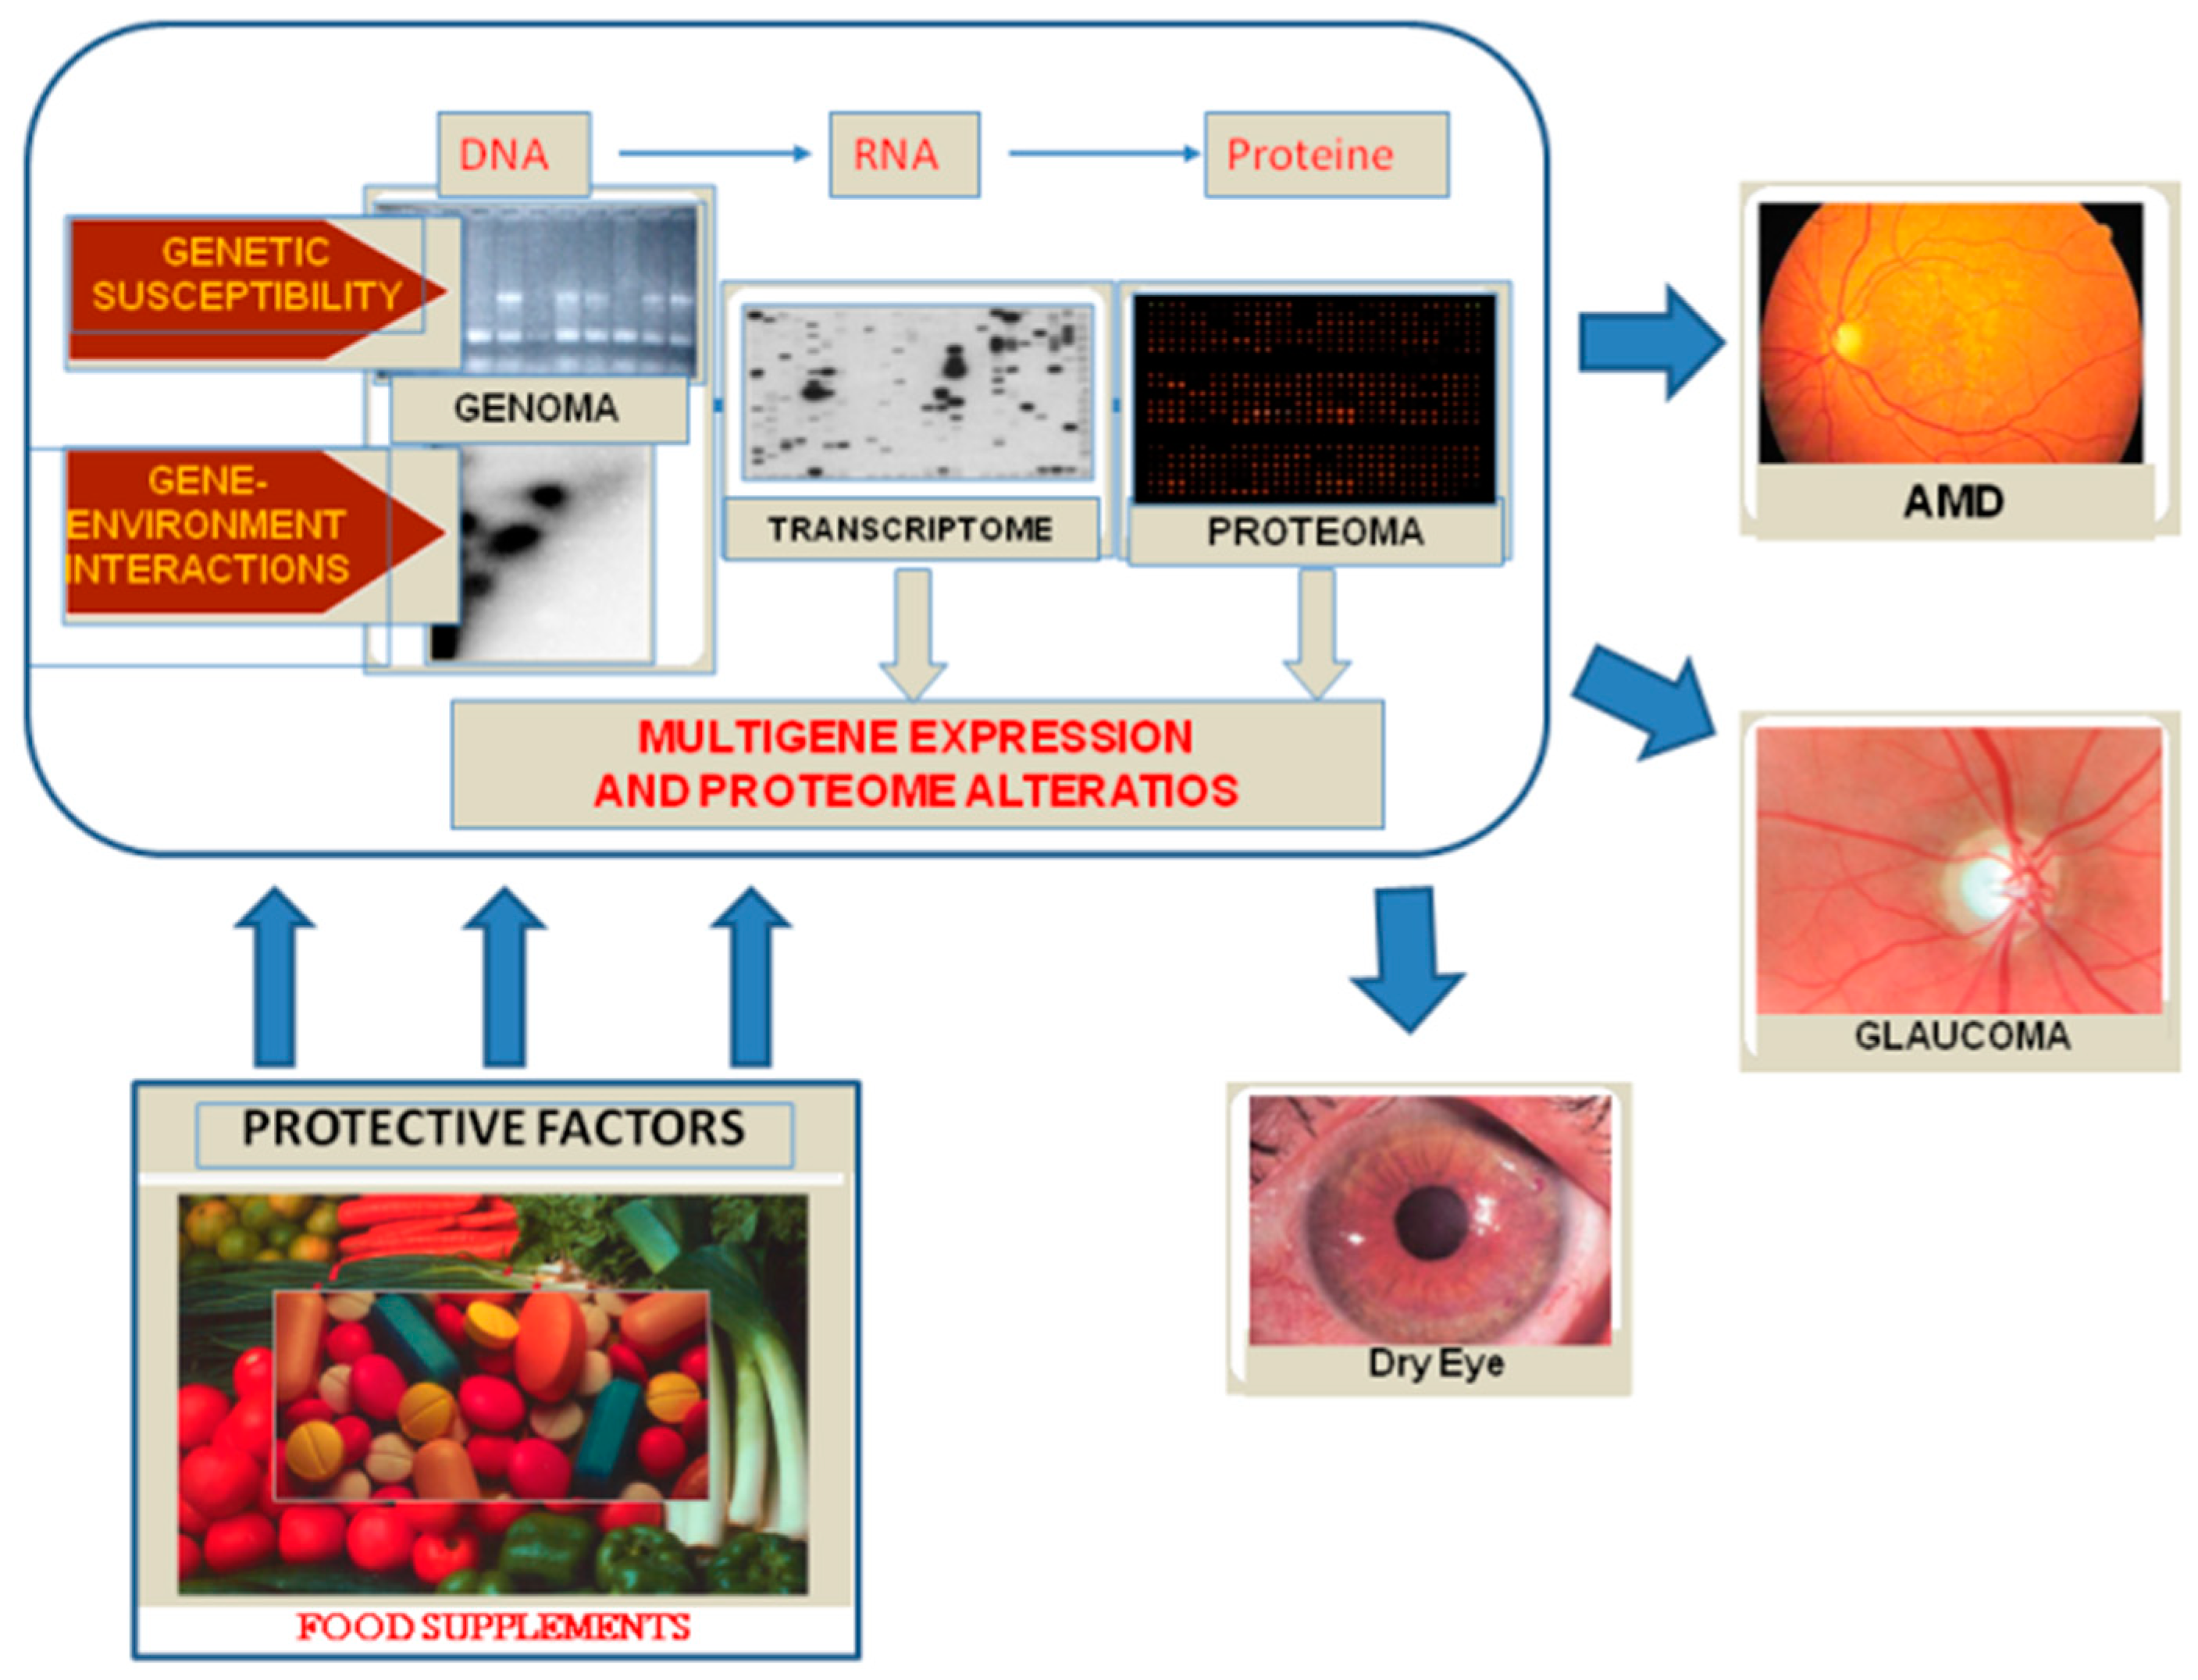 Nutrients | Free Full-Text | The Eye, Oxidative Damage and